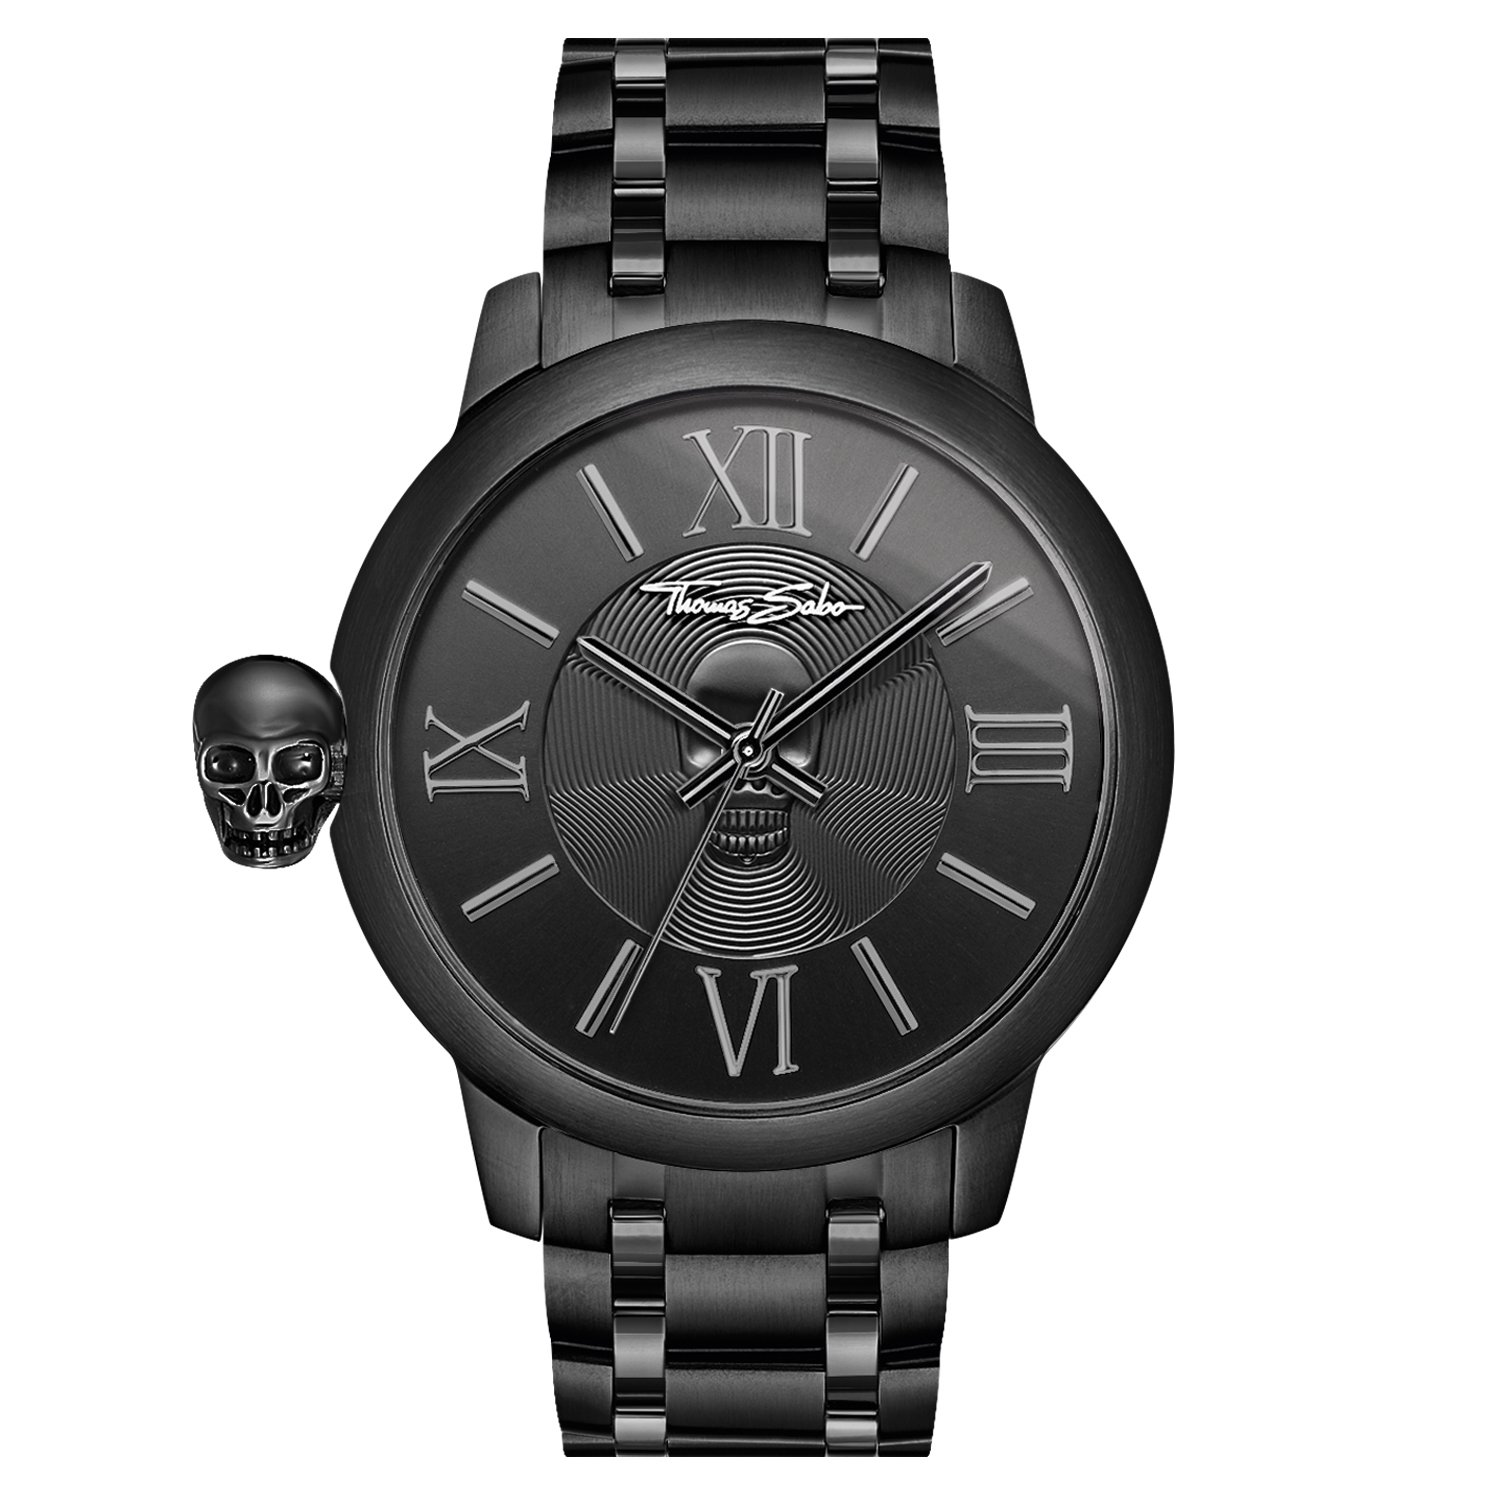 Thomas Sabo Reloj para señor Rebel with Karma Negro WA0305-202-203-46 mm